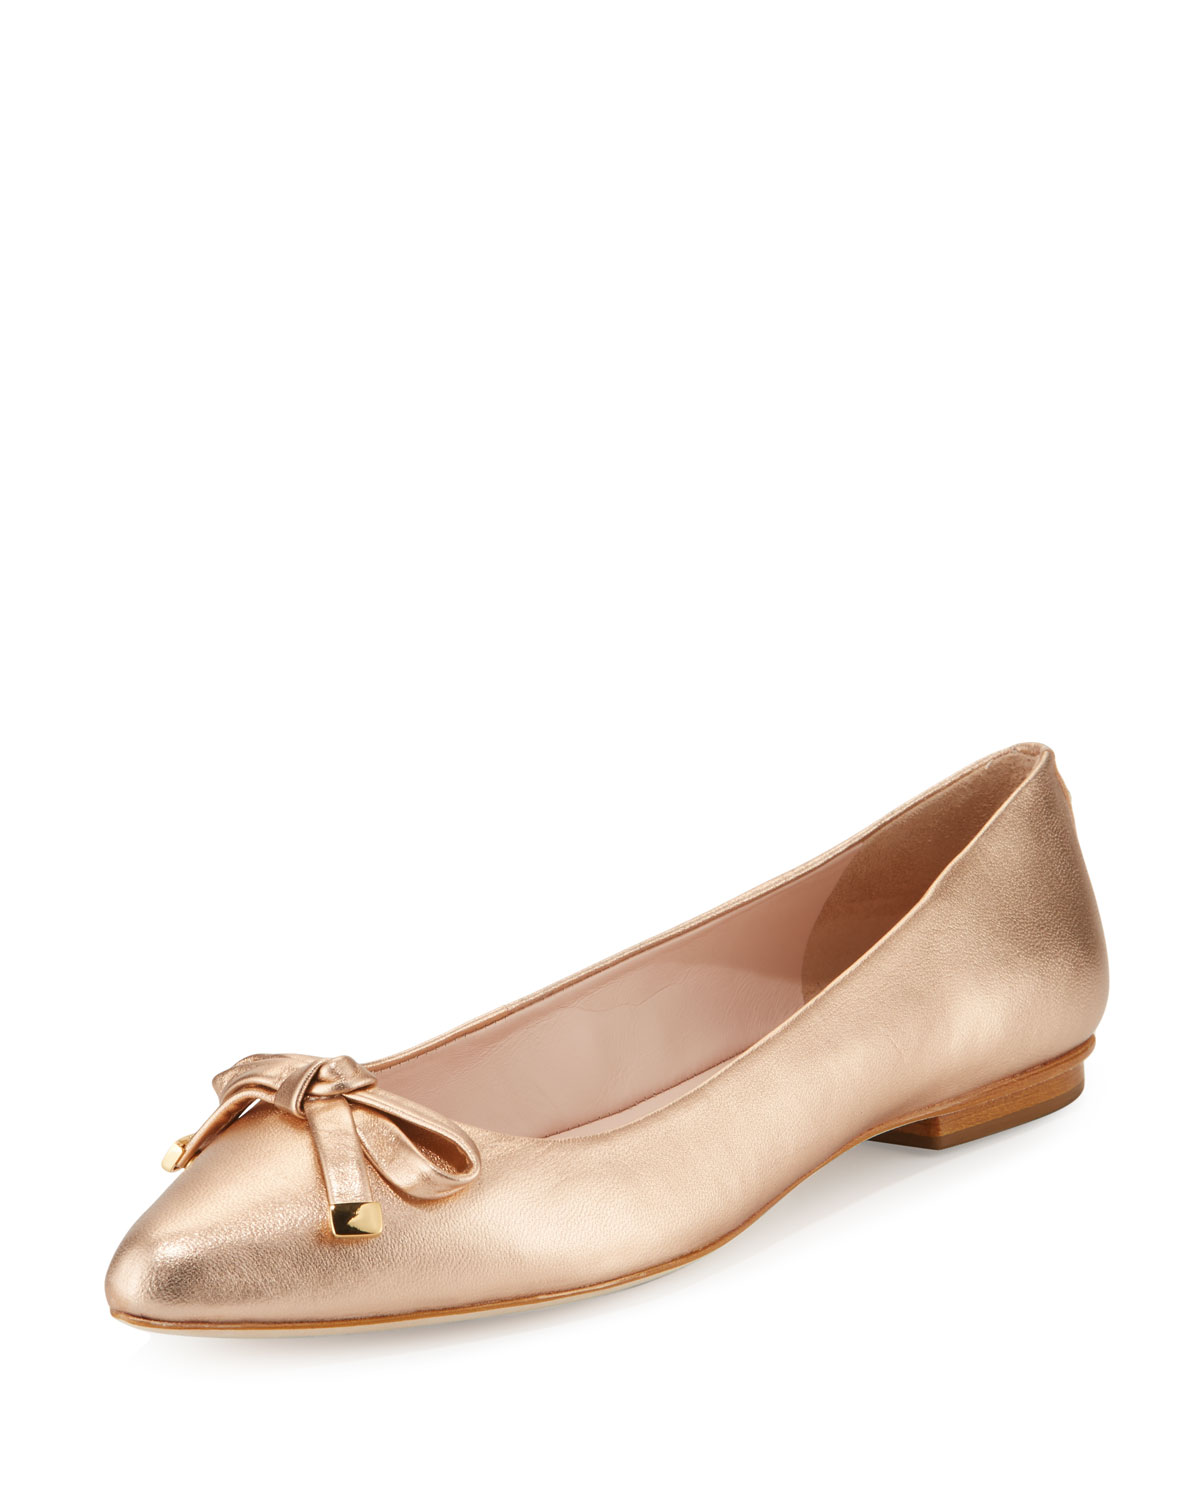 c111fb22613 kate spade new york emma leather bow Ballet Flat